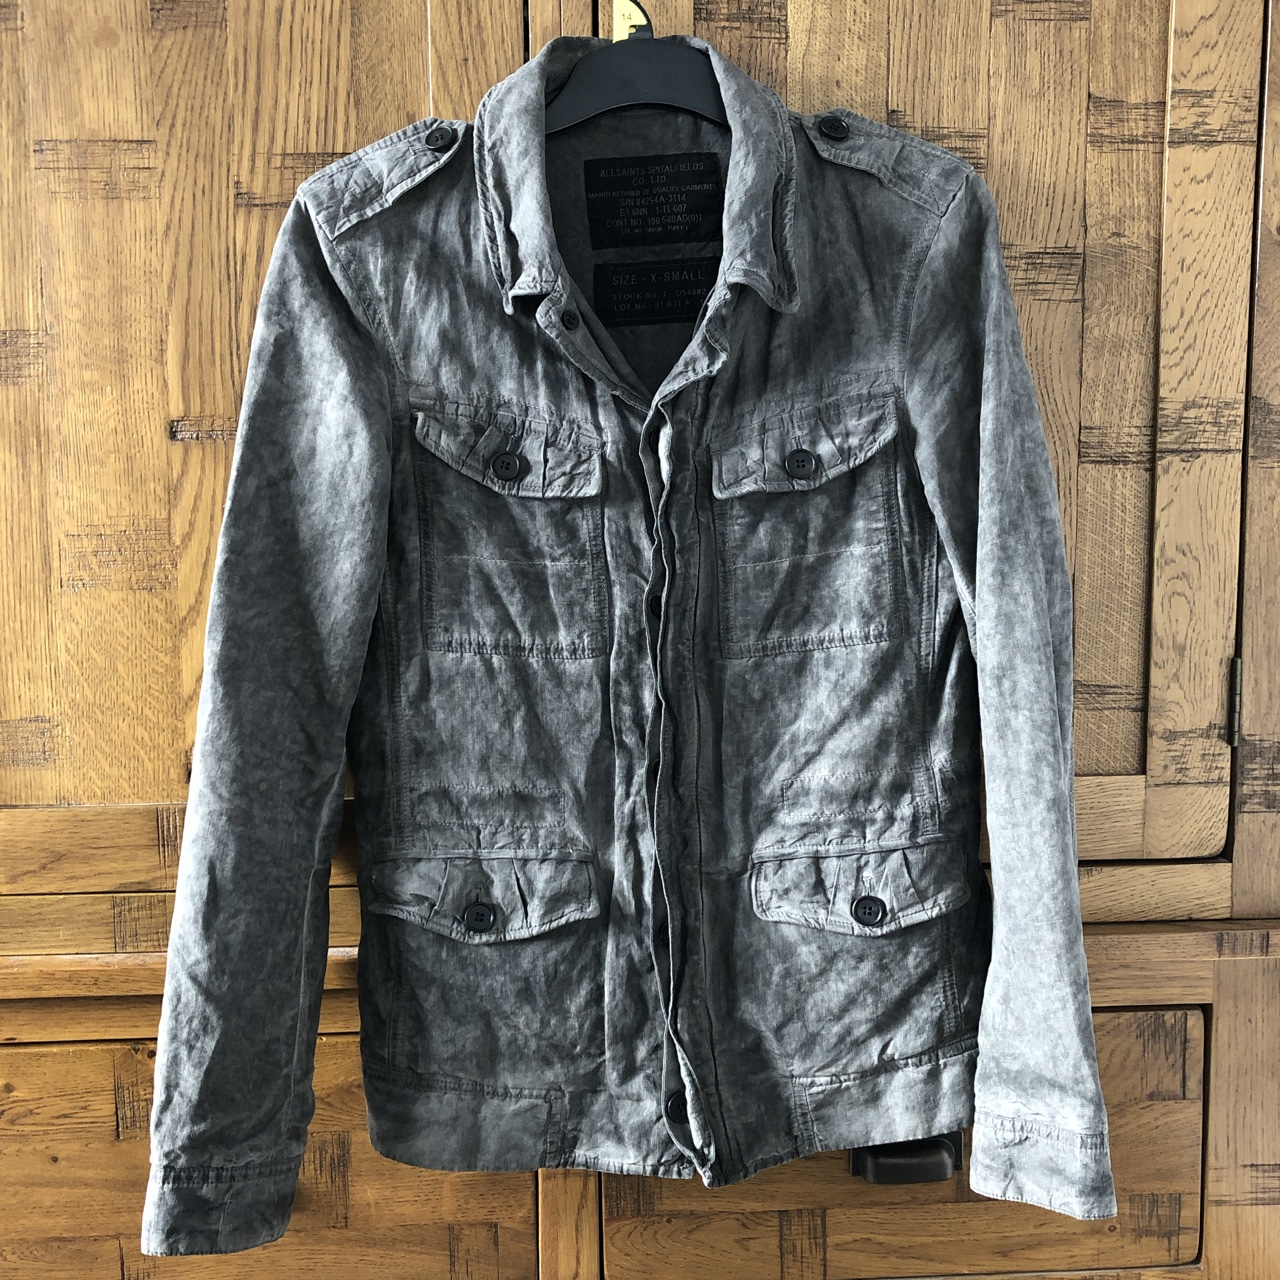 All Saints Xs Men's Jacket/Overshirt 9/10 Condition by Depop